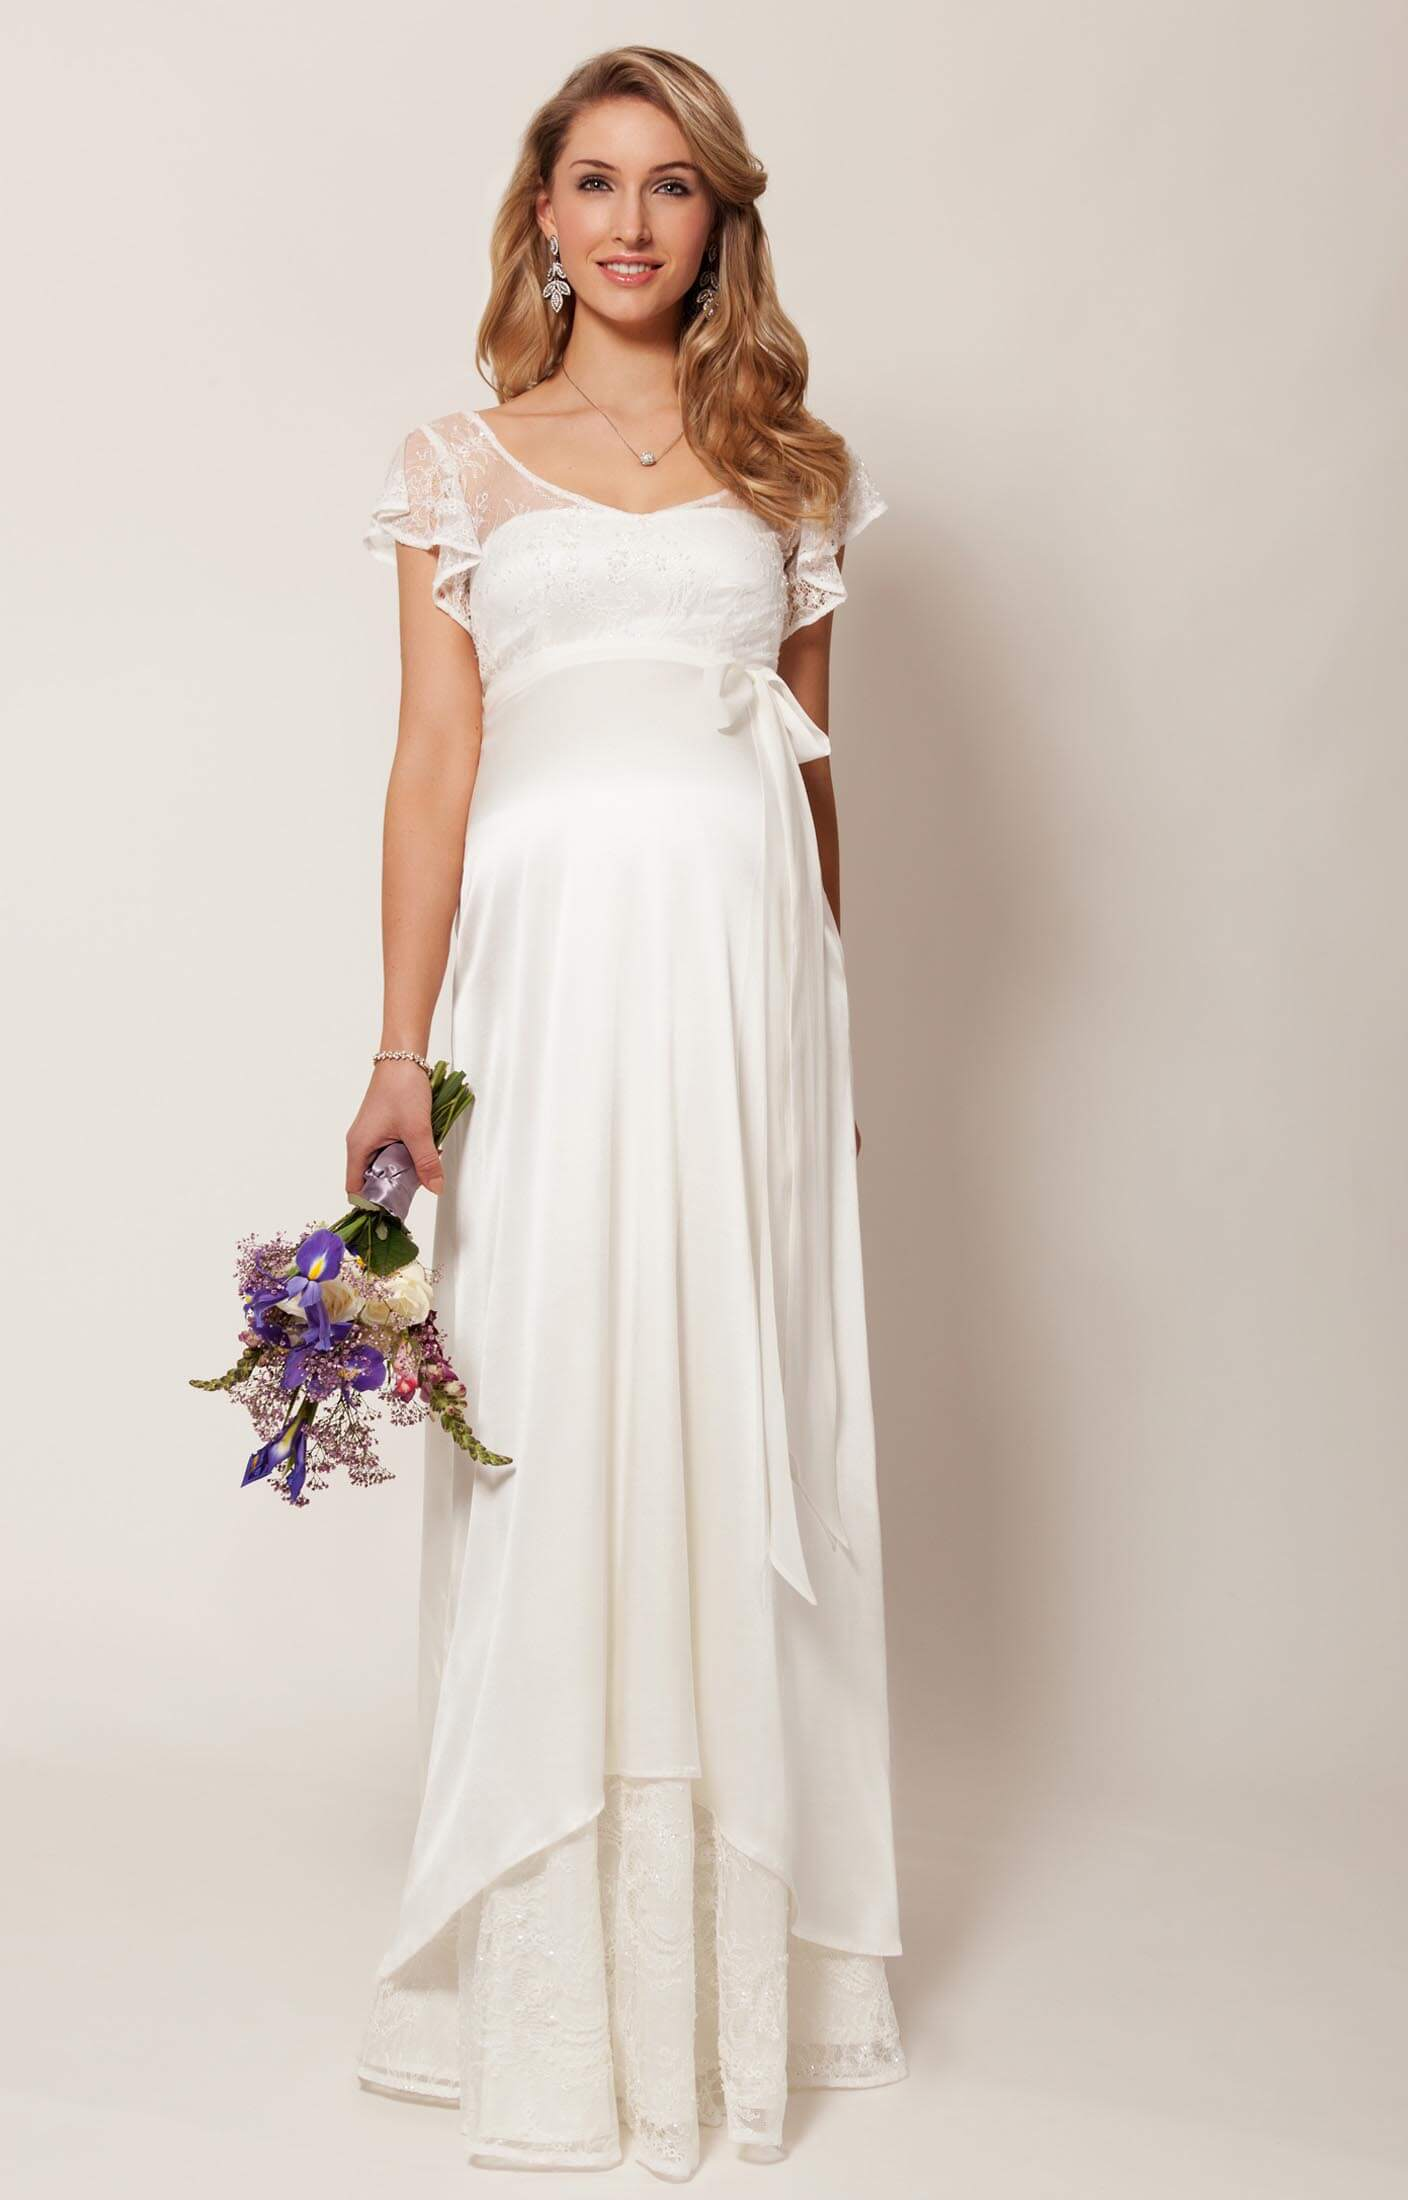 Juliette Maternity Wedding Gown (Ivory) pregnancy wedding dresses Juliette Maternity Wedding Gown Ivory by Tiffany Rose